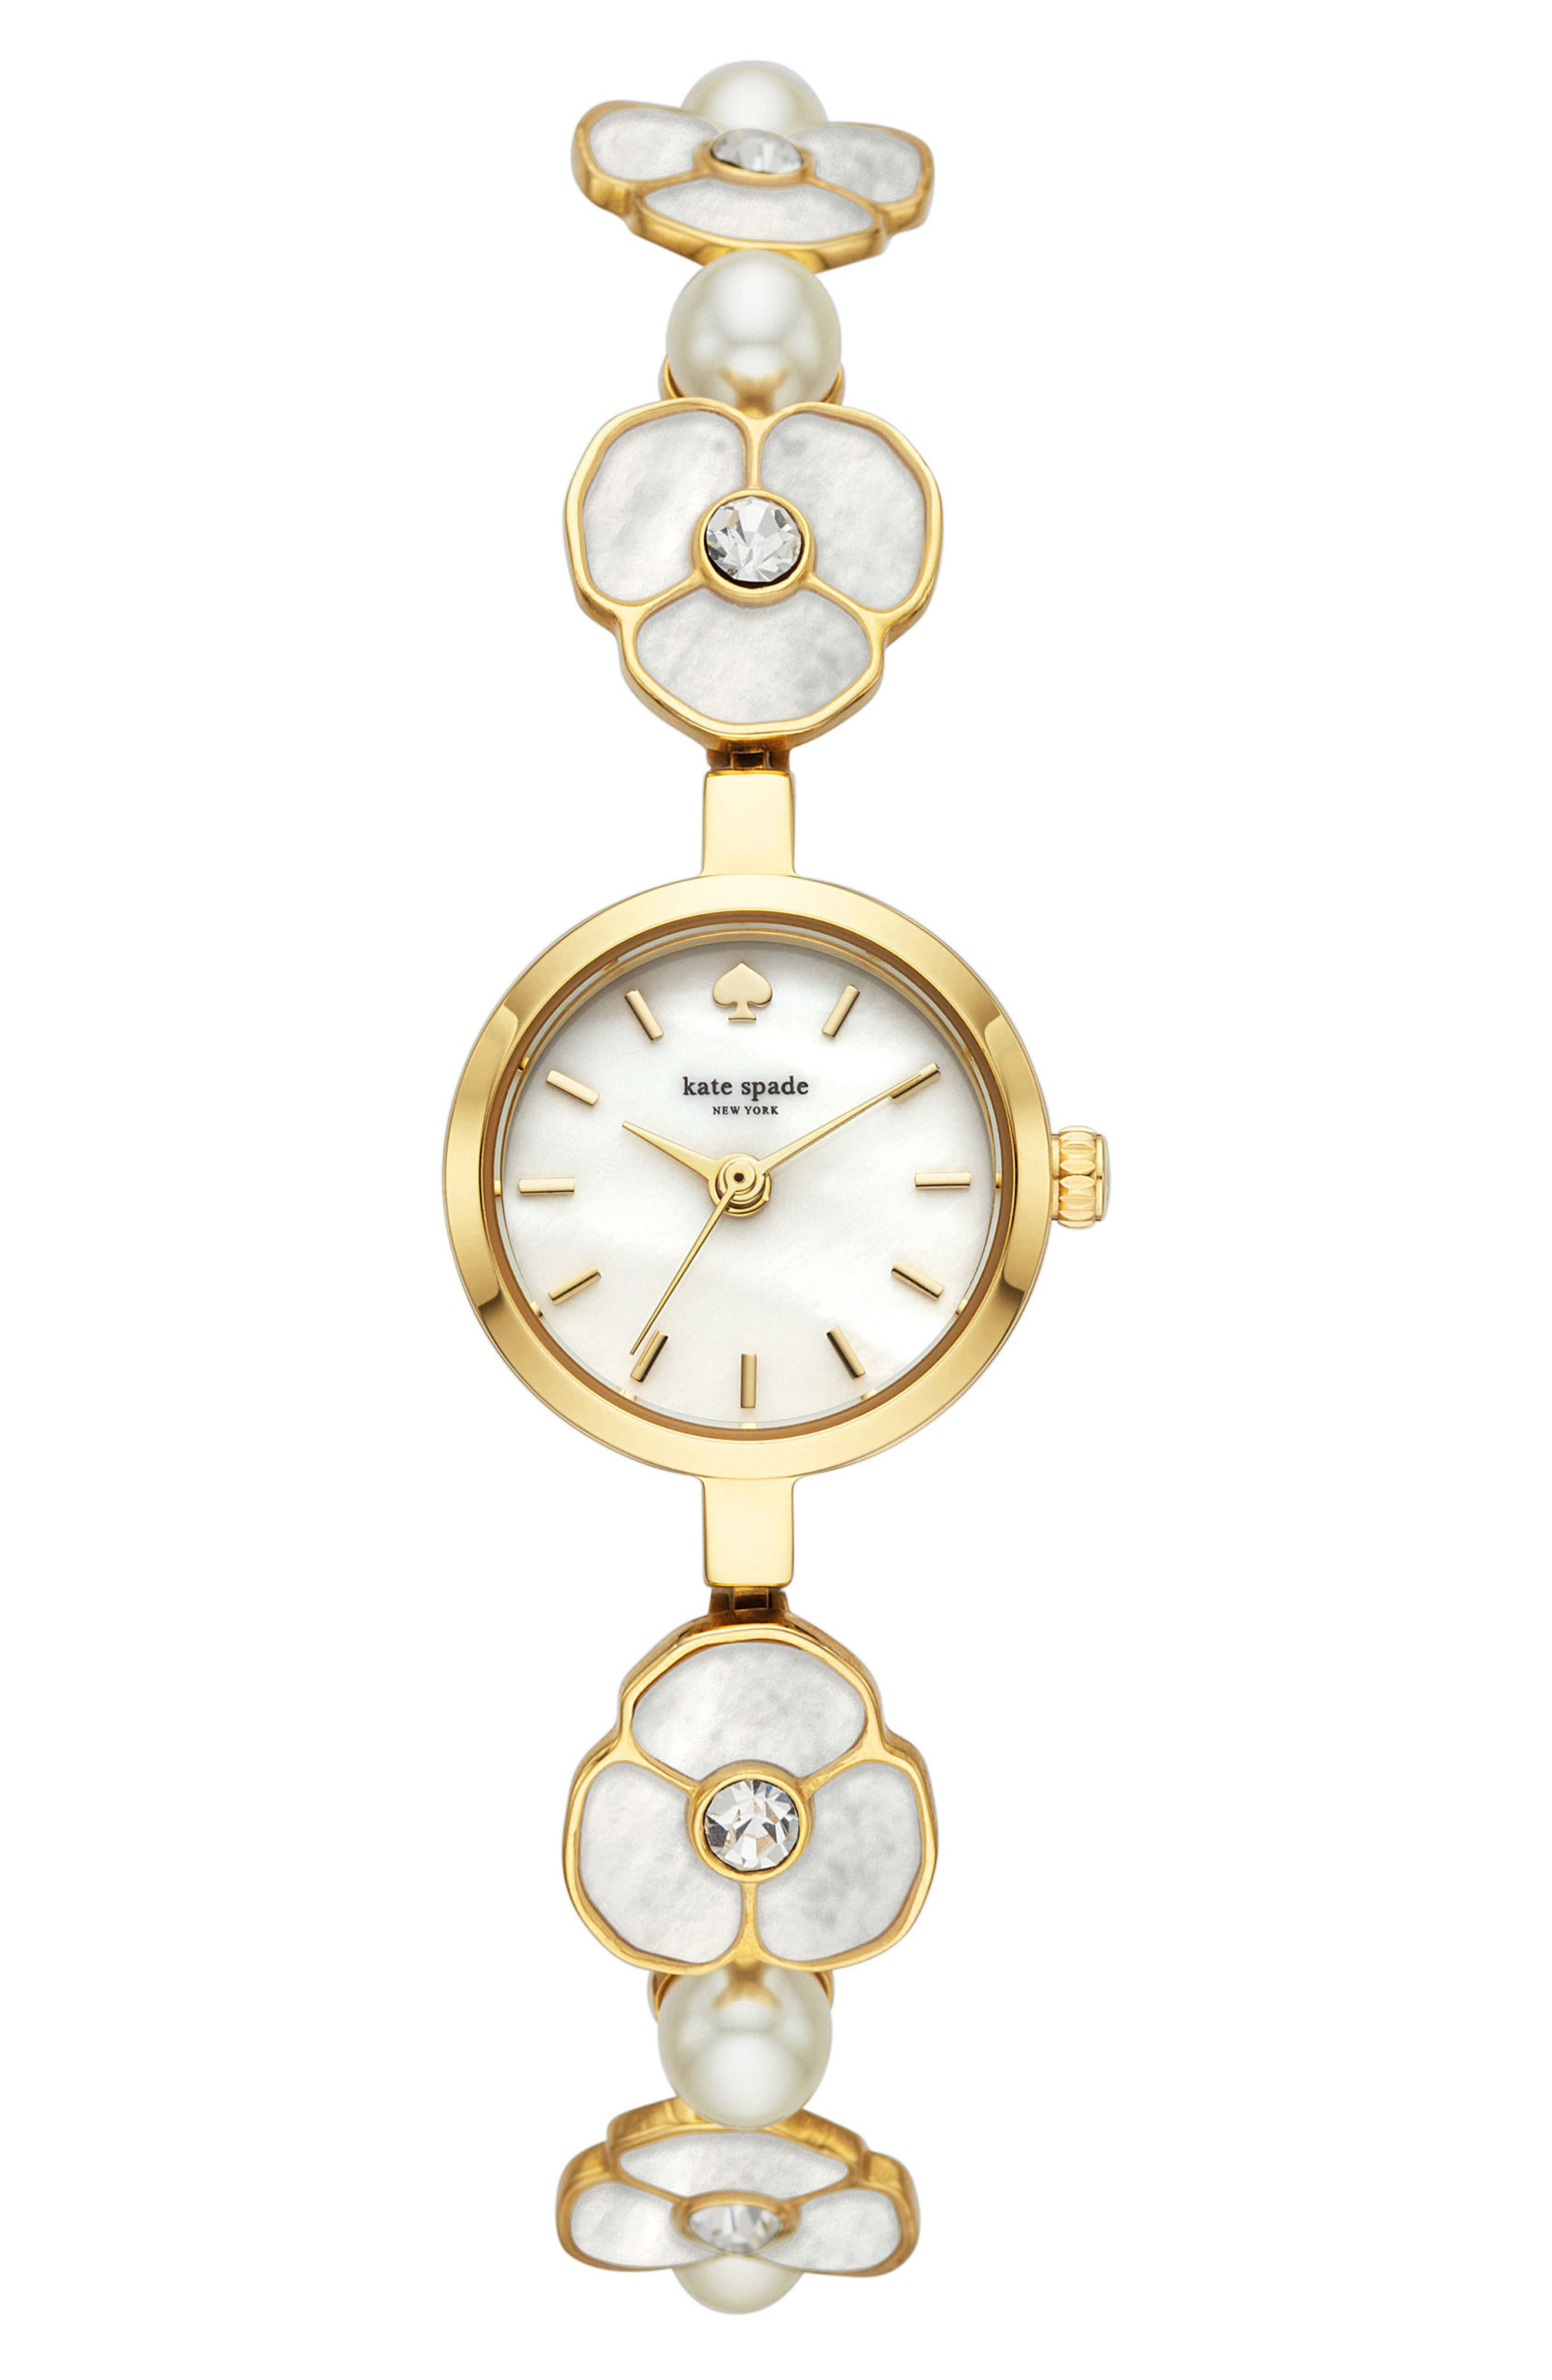 kate spade metro bracelet watch, 21mm